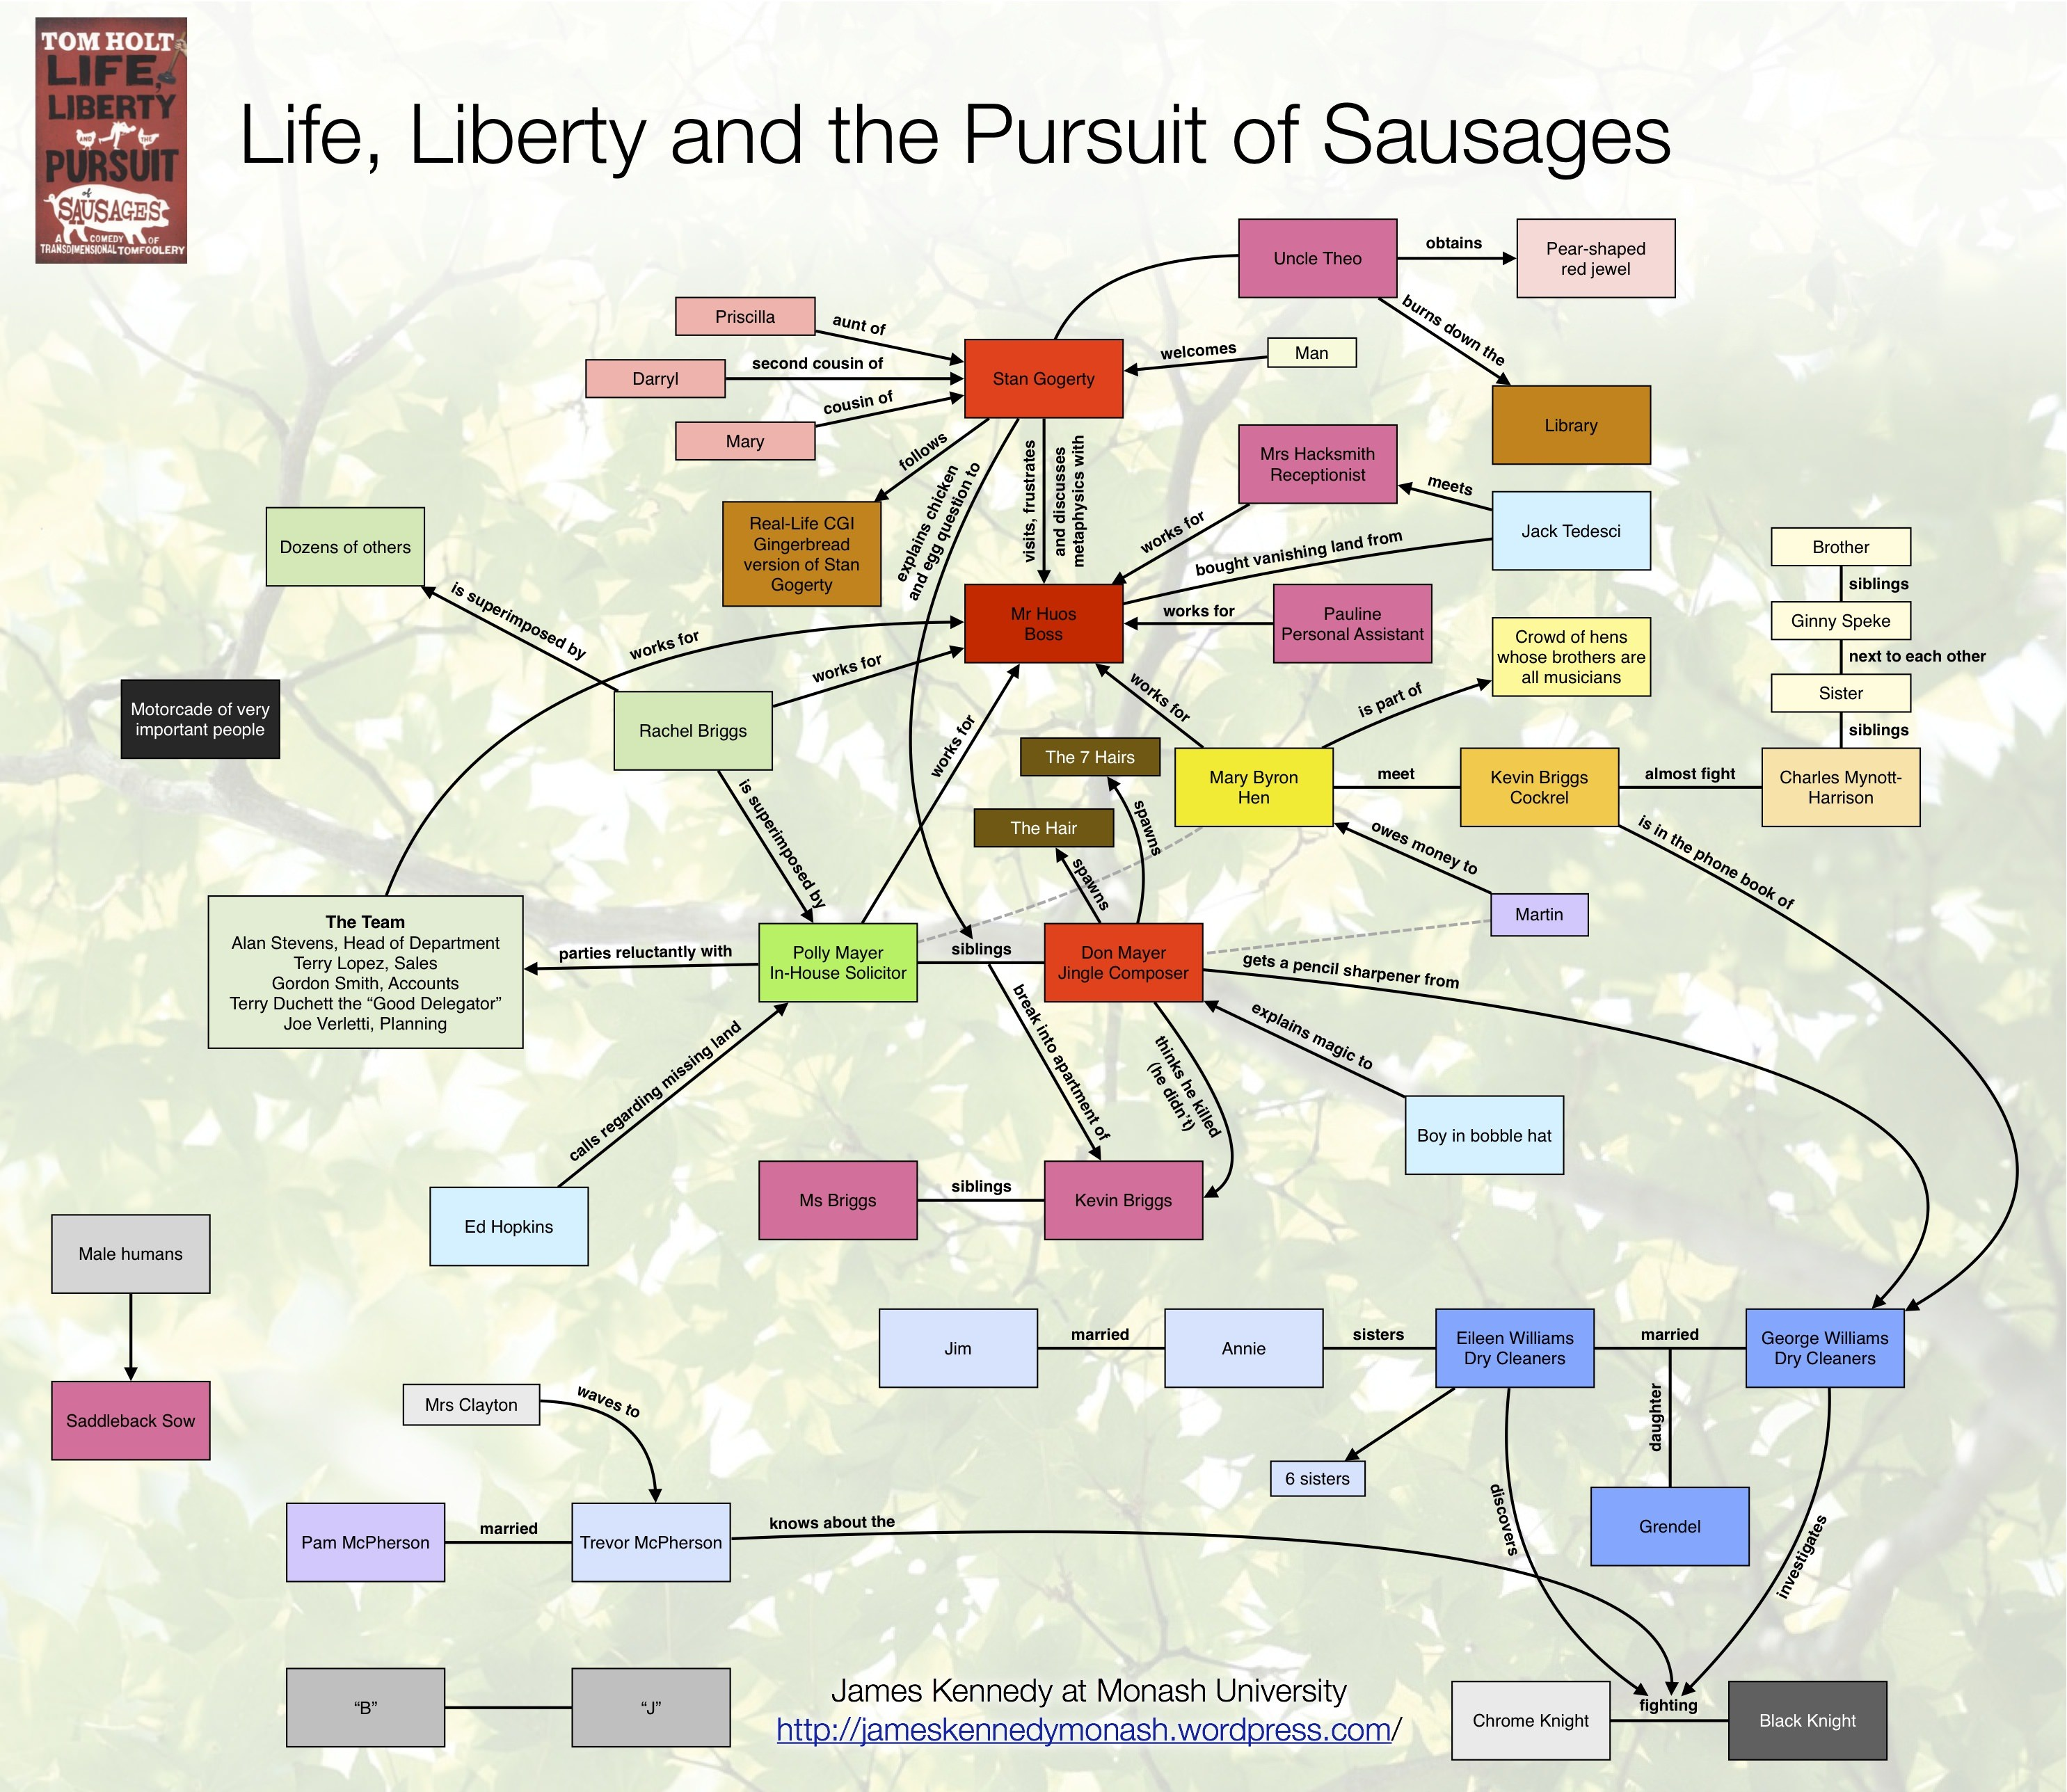 Life Liberty and the Pursuit of Sausages Character Map